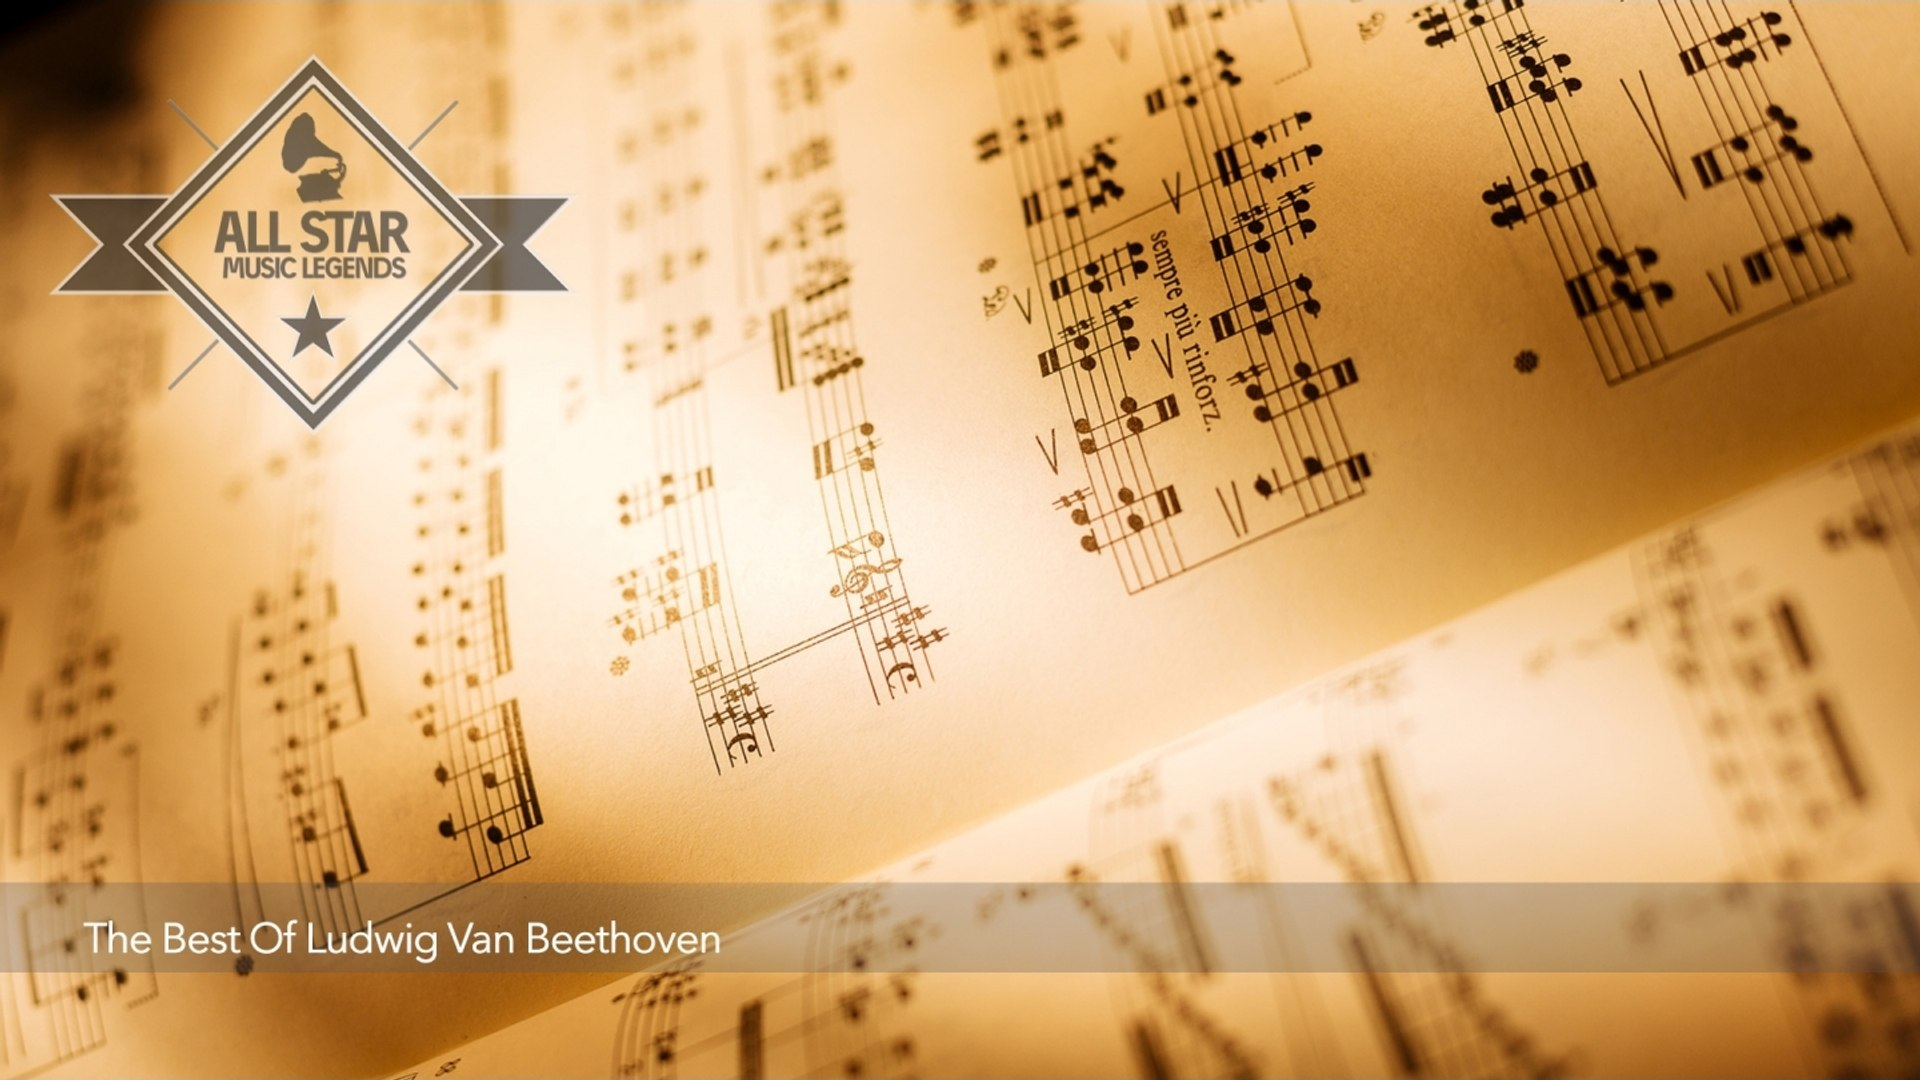 VA - Classical Music // The Best Of Ludwig Van Beethoven (3 Hours) // All Star Music Legends